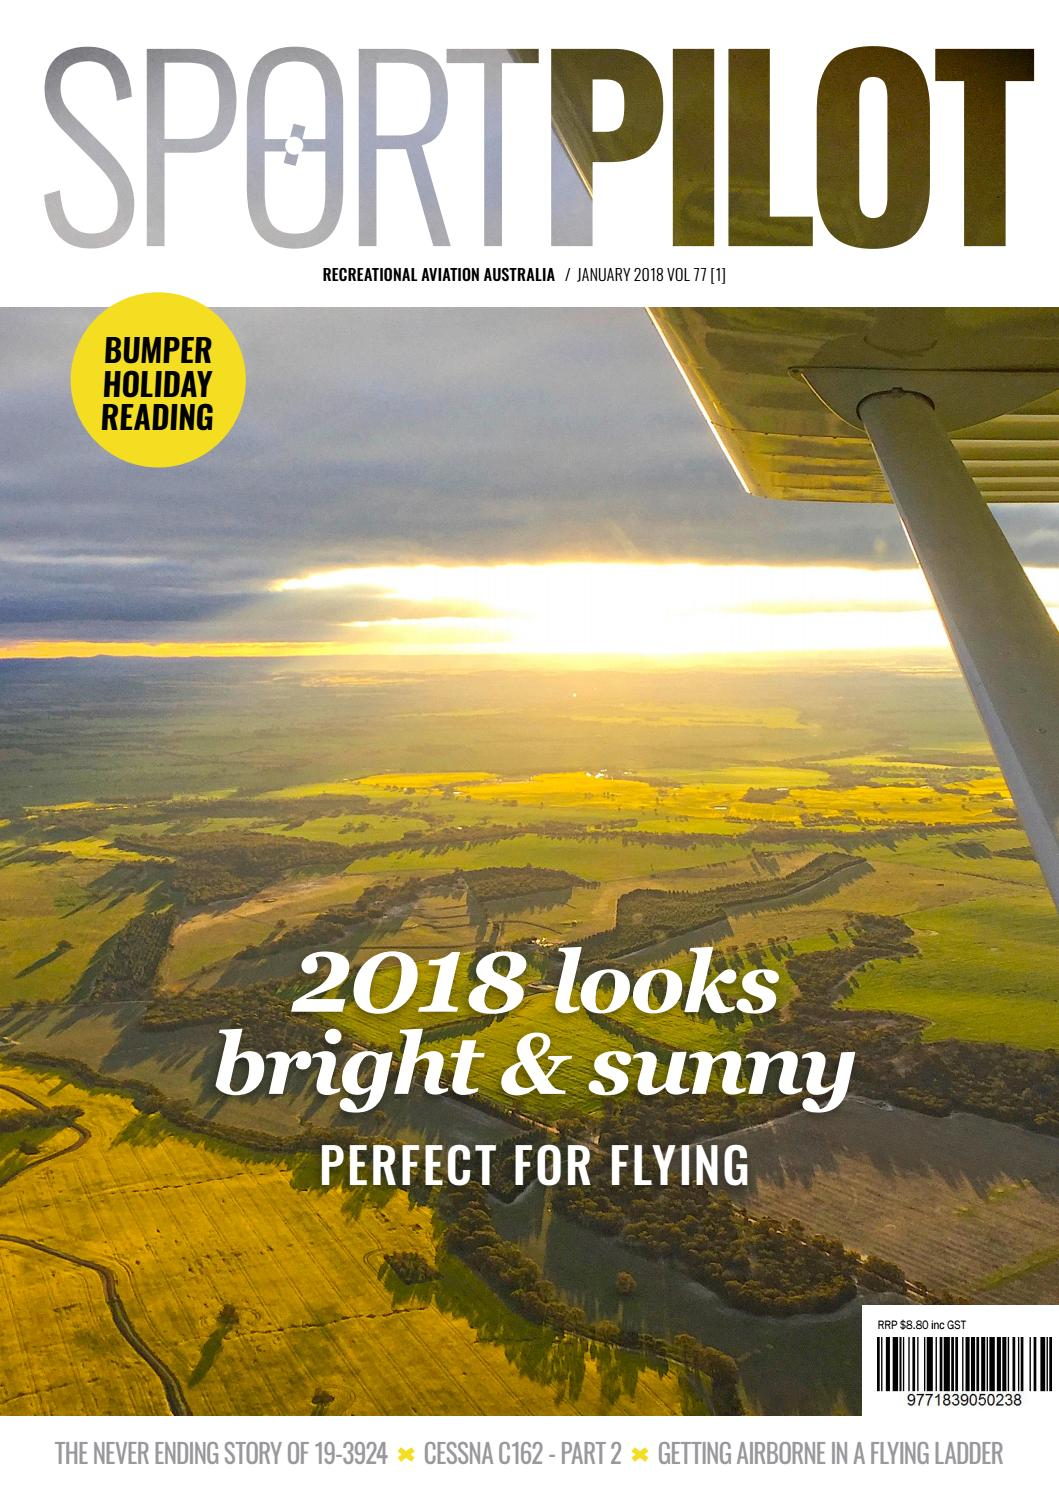 Sport Pilot 77 Jan 2018 By Recreational Aviation Australia Issuu Make Yourself Visible To Others When Your Flying Strobe Lights